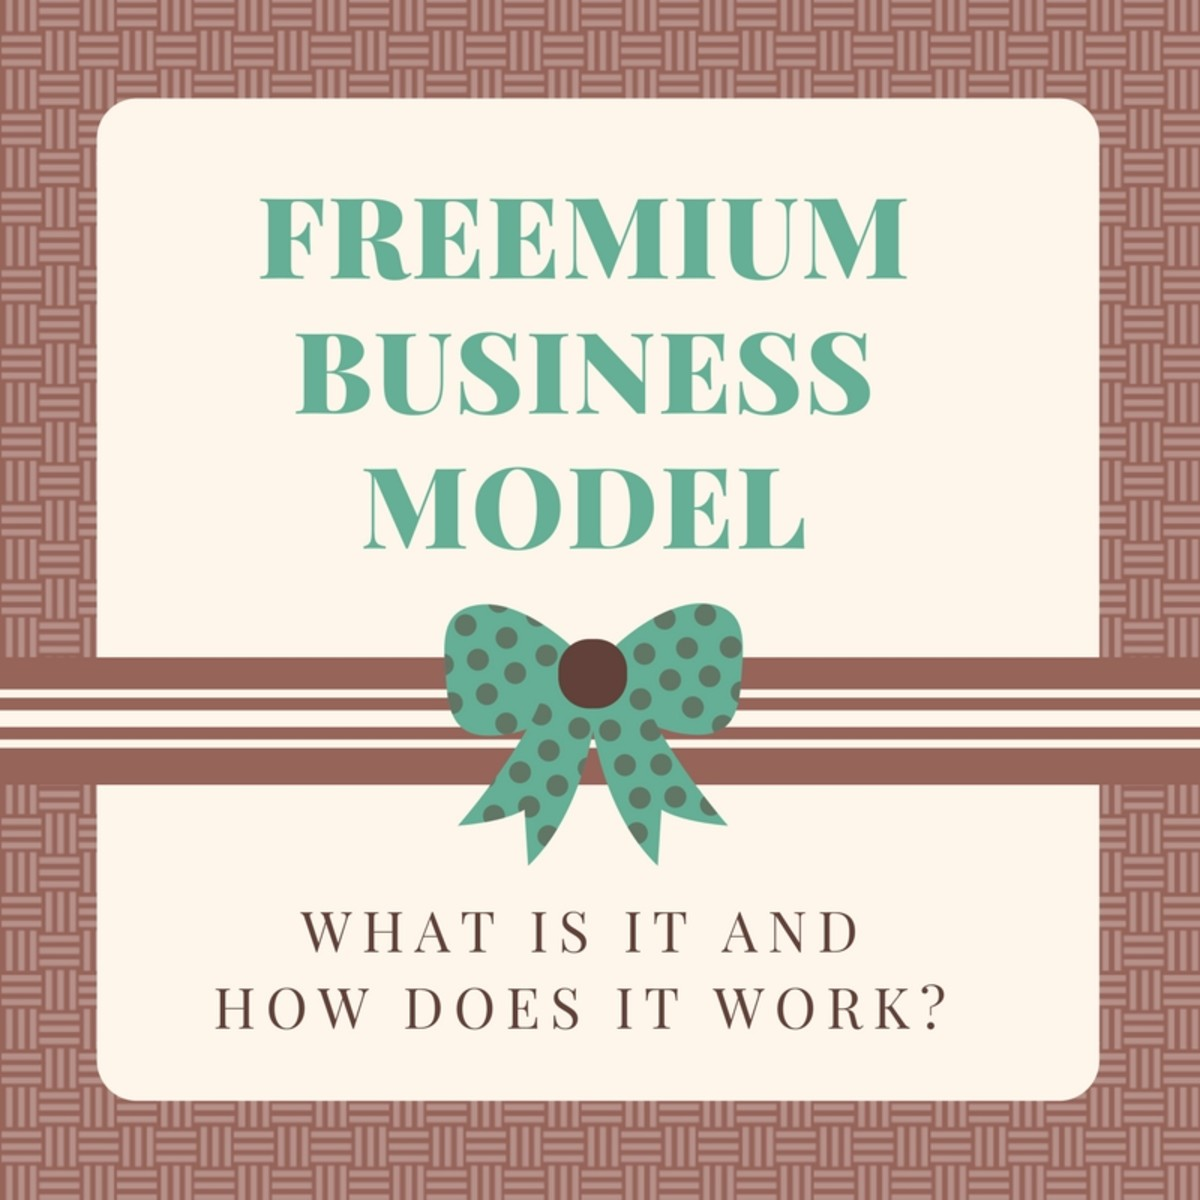 Freemium Business Model for Marketing: What is It and How Does It Work?